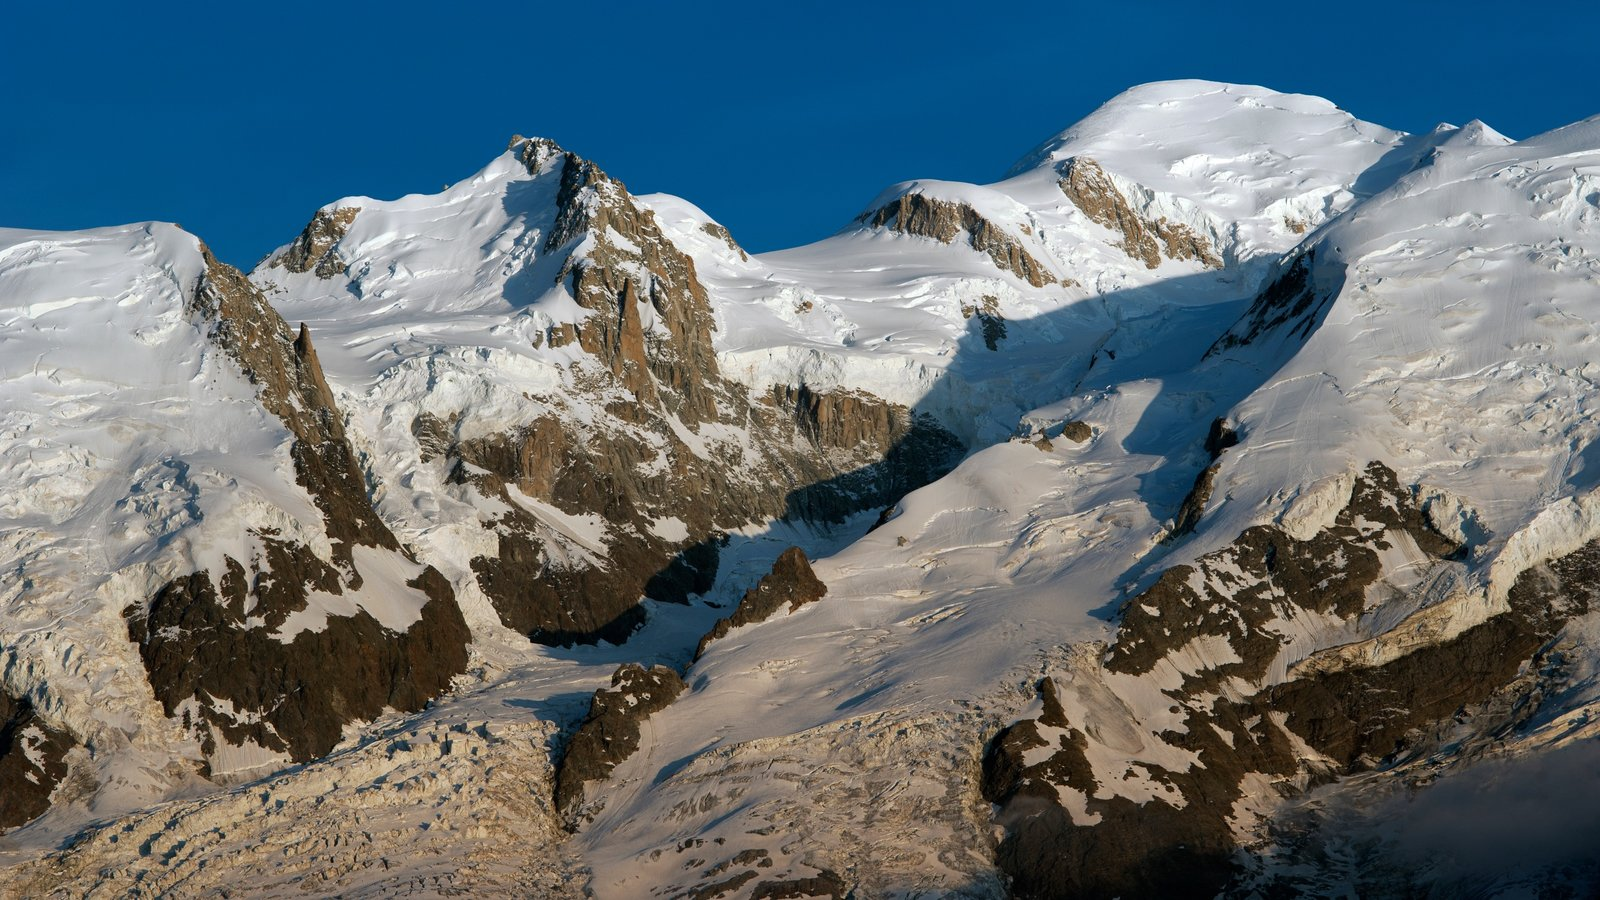 Mountain pictures view images of mont blanc - Chamonix mont blanc office du tourisme ...